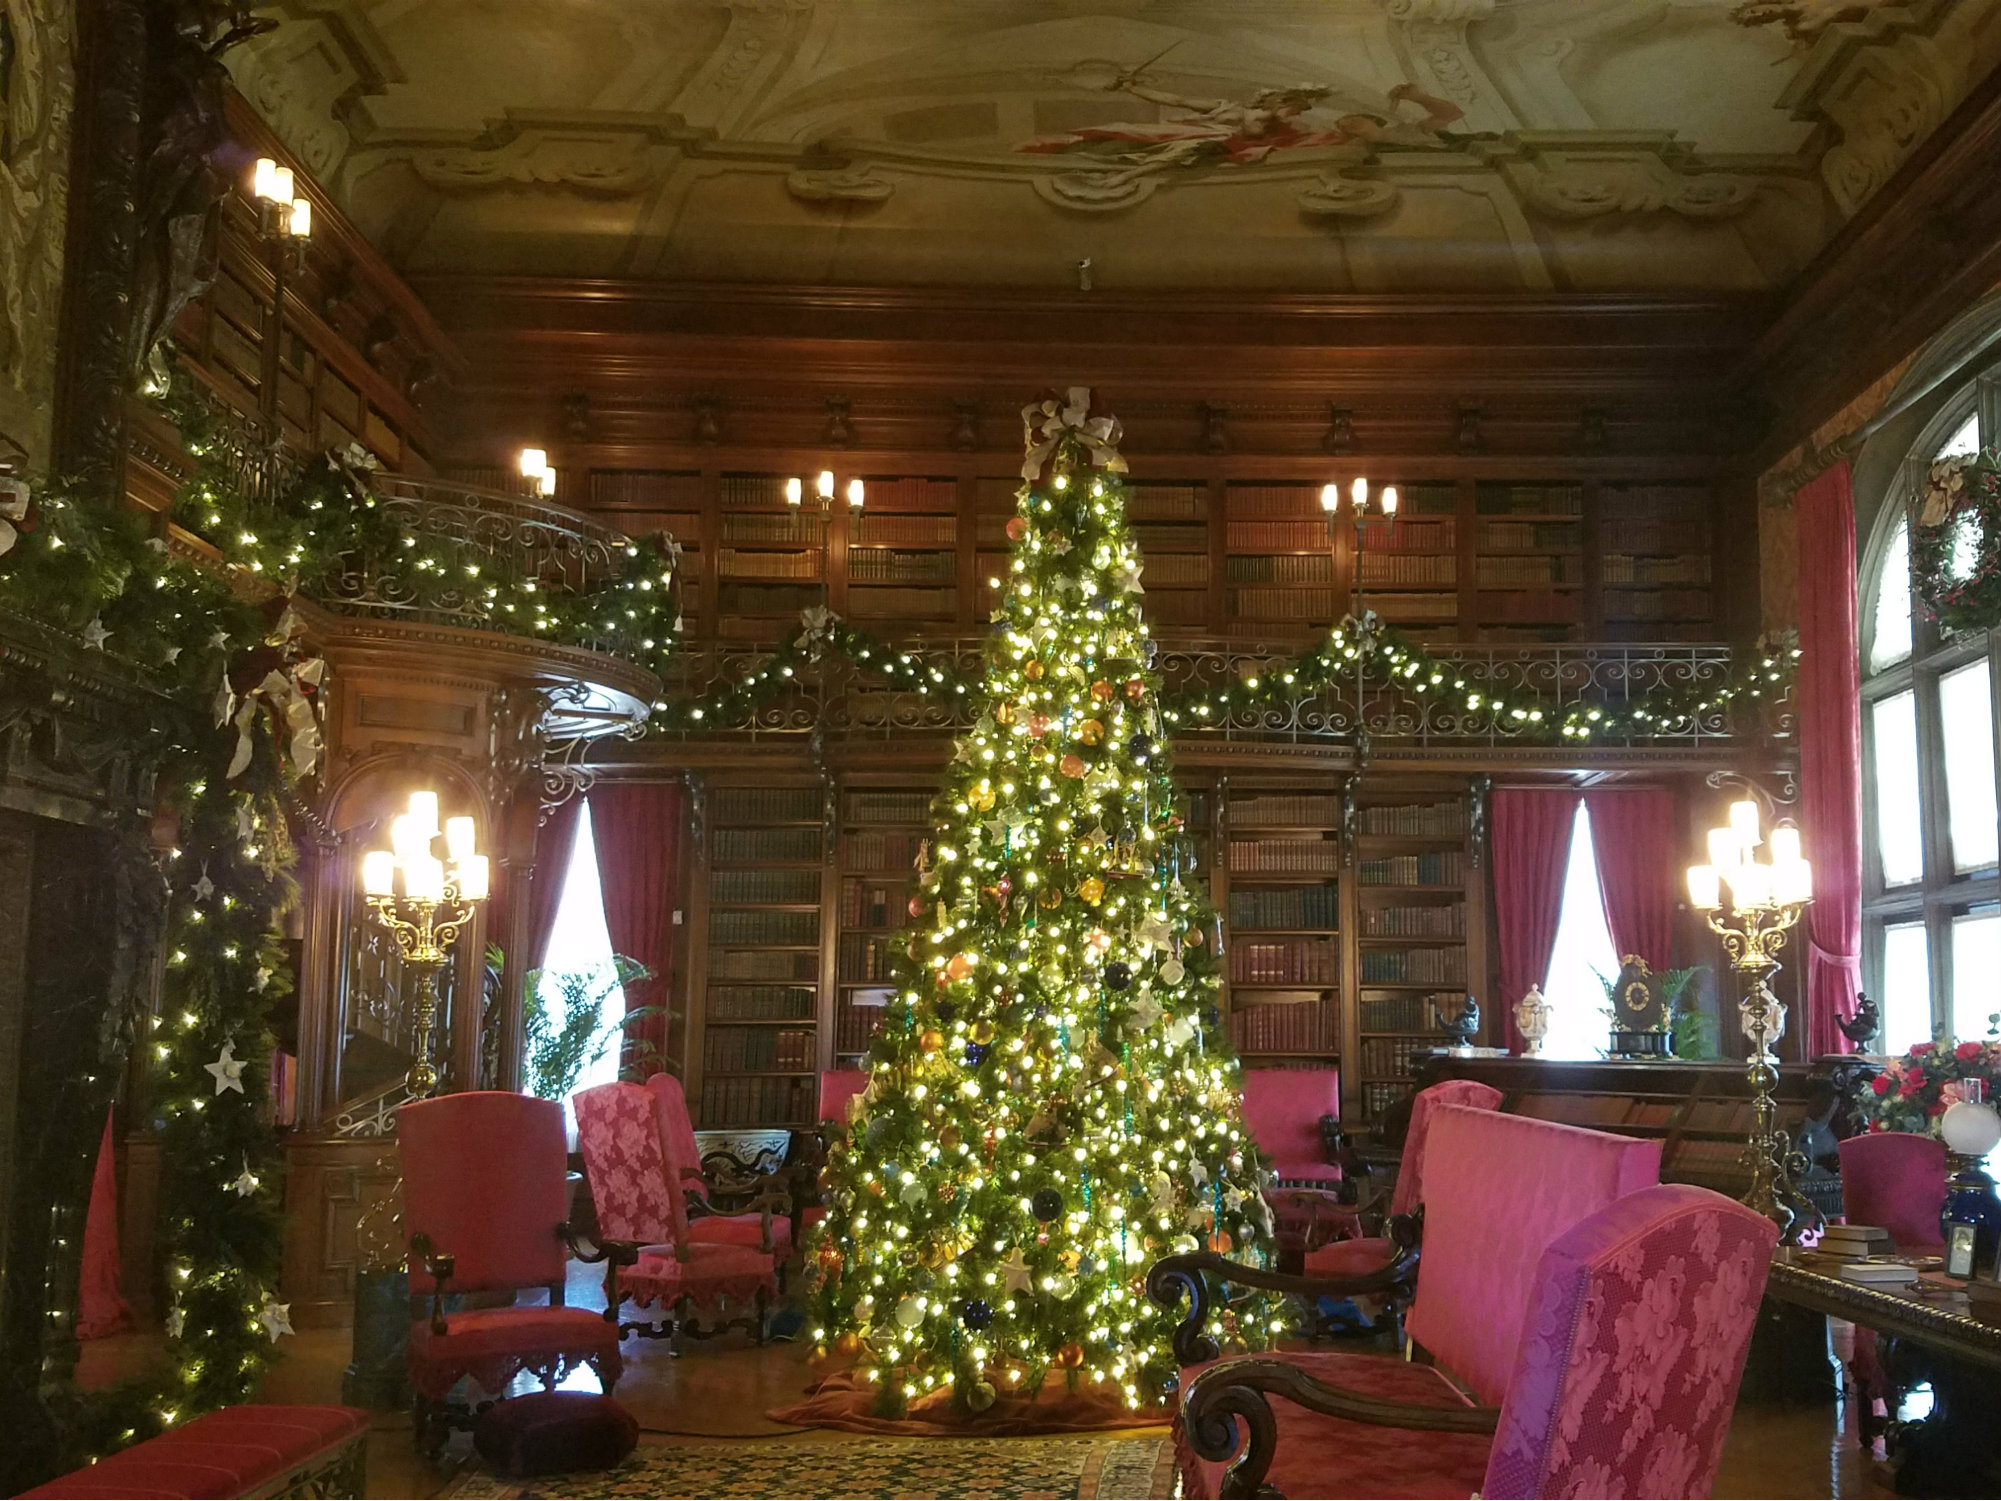 Two story library with shelves full of books, painted ceiling and very tall Christmas tree